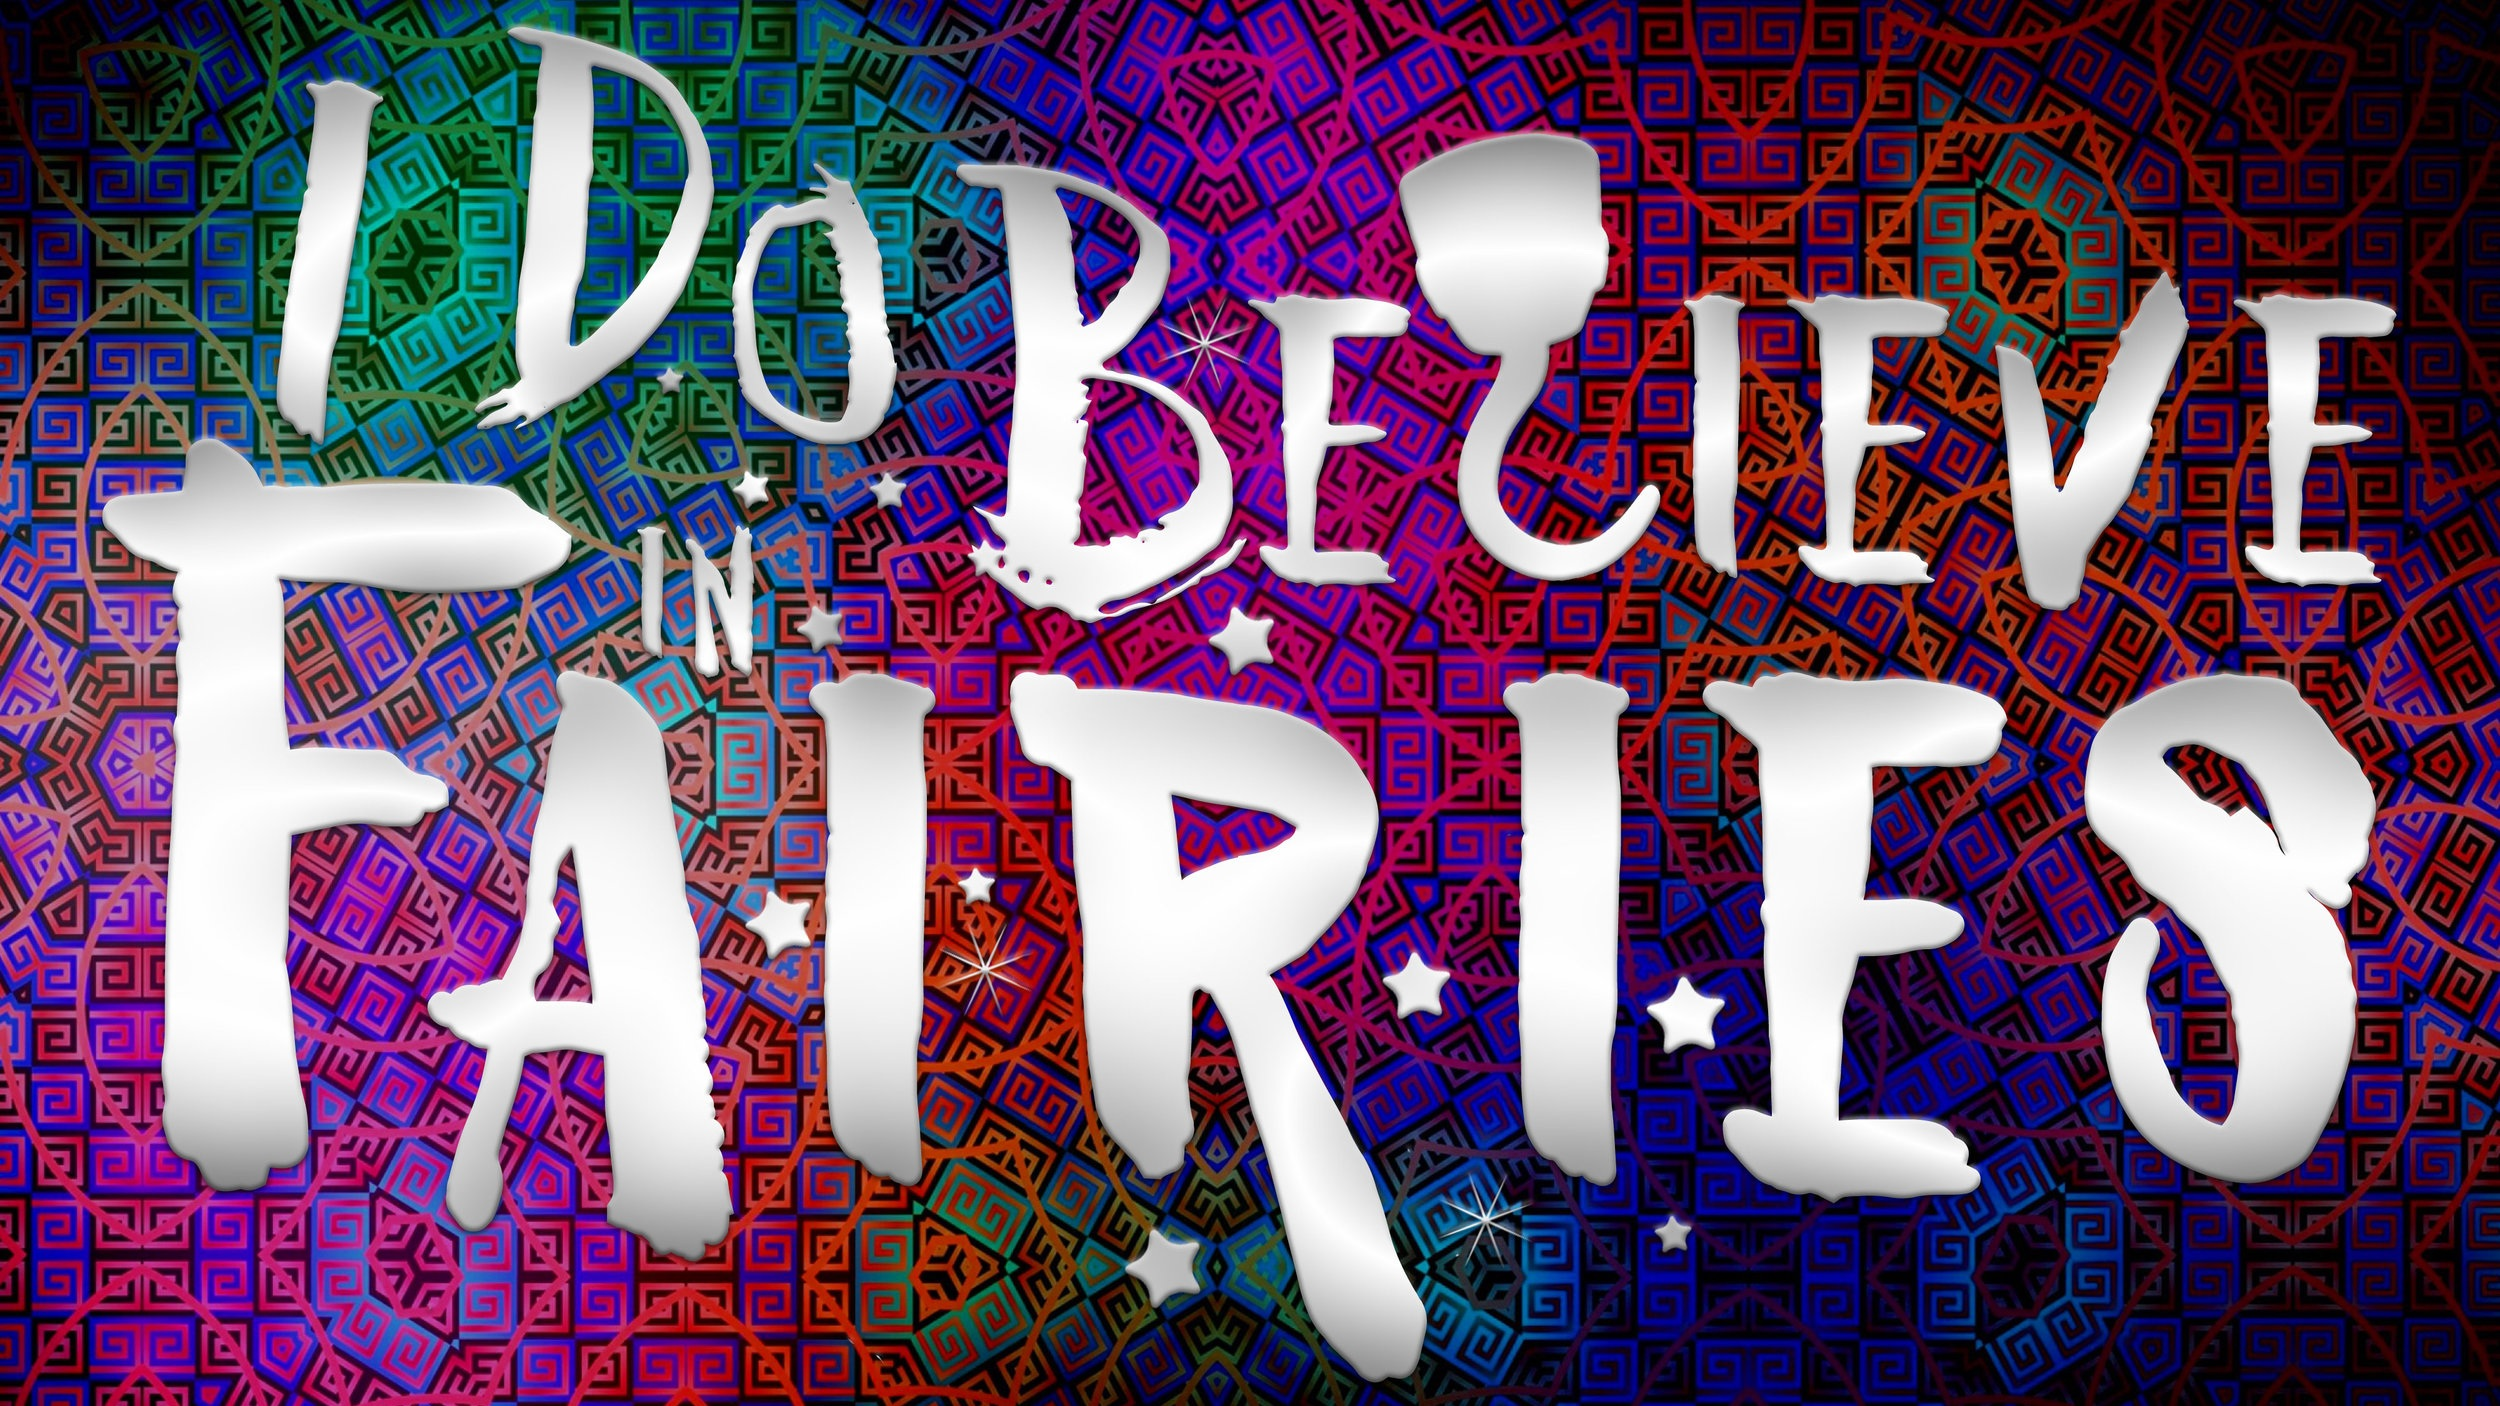 I Do Believe in Fairies - by Mark Thomas Johnsonwith Yoni Weiss and The Killer DarlingsDirectorDixon Place (2019) &HOT! Festival at Dixon Place (2019)Produced by Doghouse Ensemble Theatre